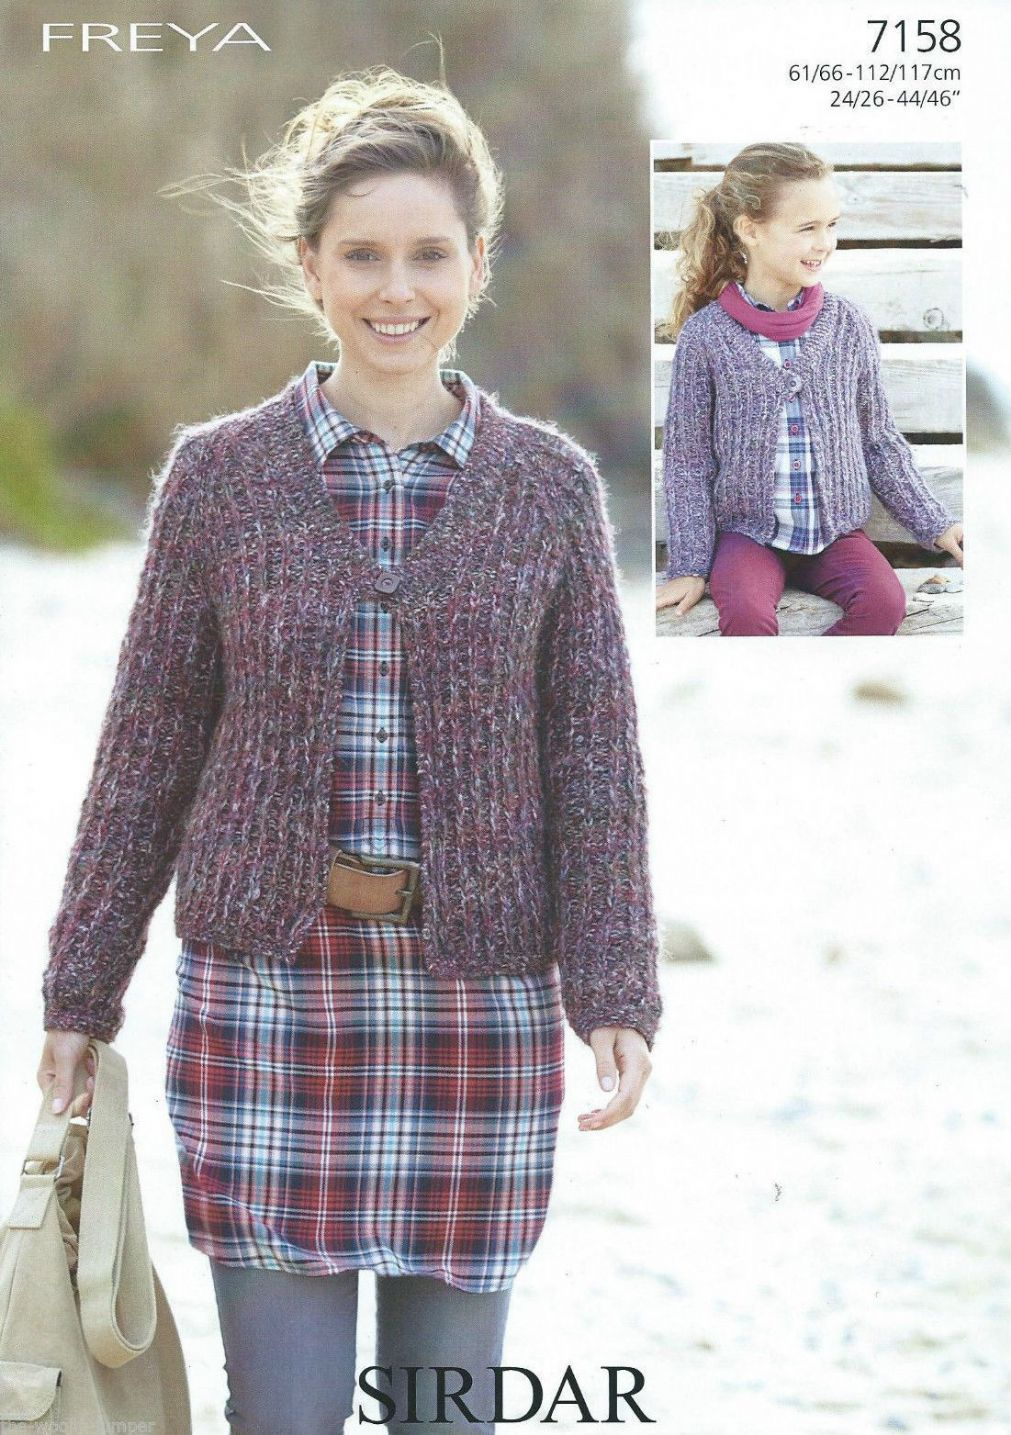 Sirdar Ladies Knitting Patterns : 7158 - SIRDAR FREYA LADIES AND GIRLS CARDIGAN KNITTING PATTERN - TO FIT 24 TO 46